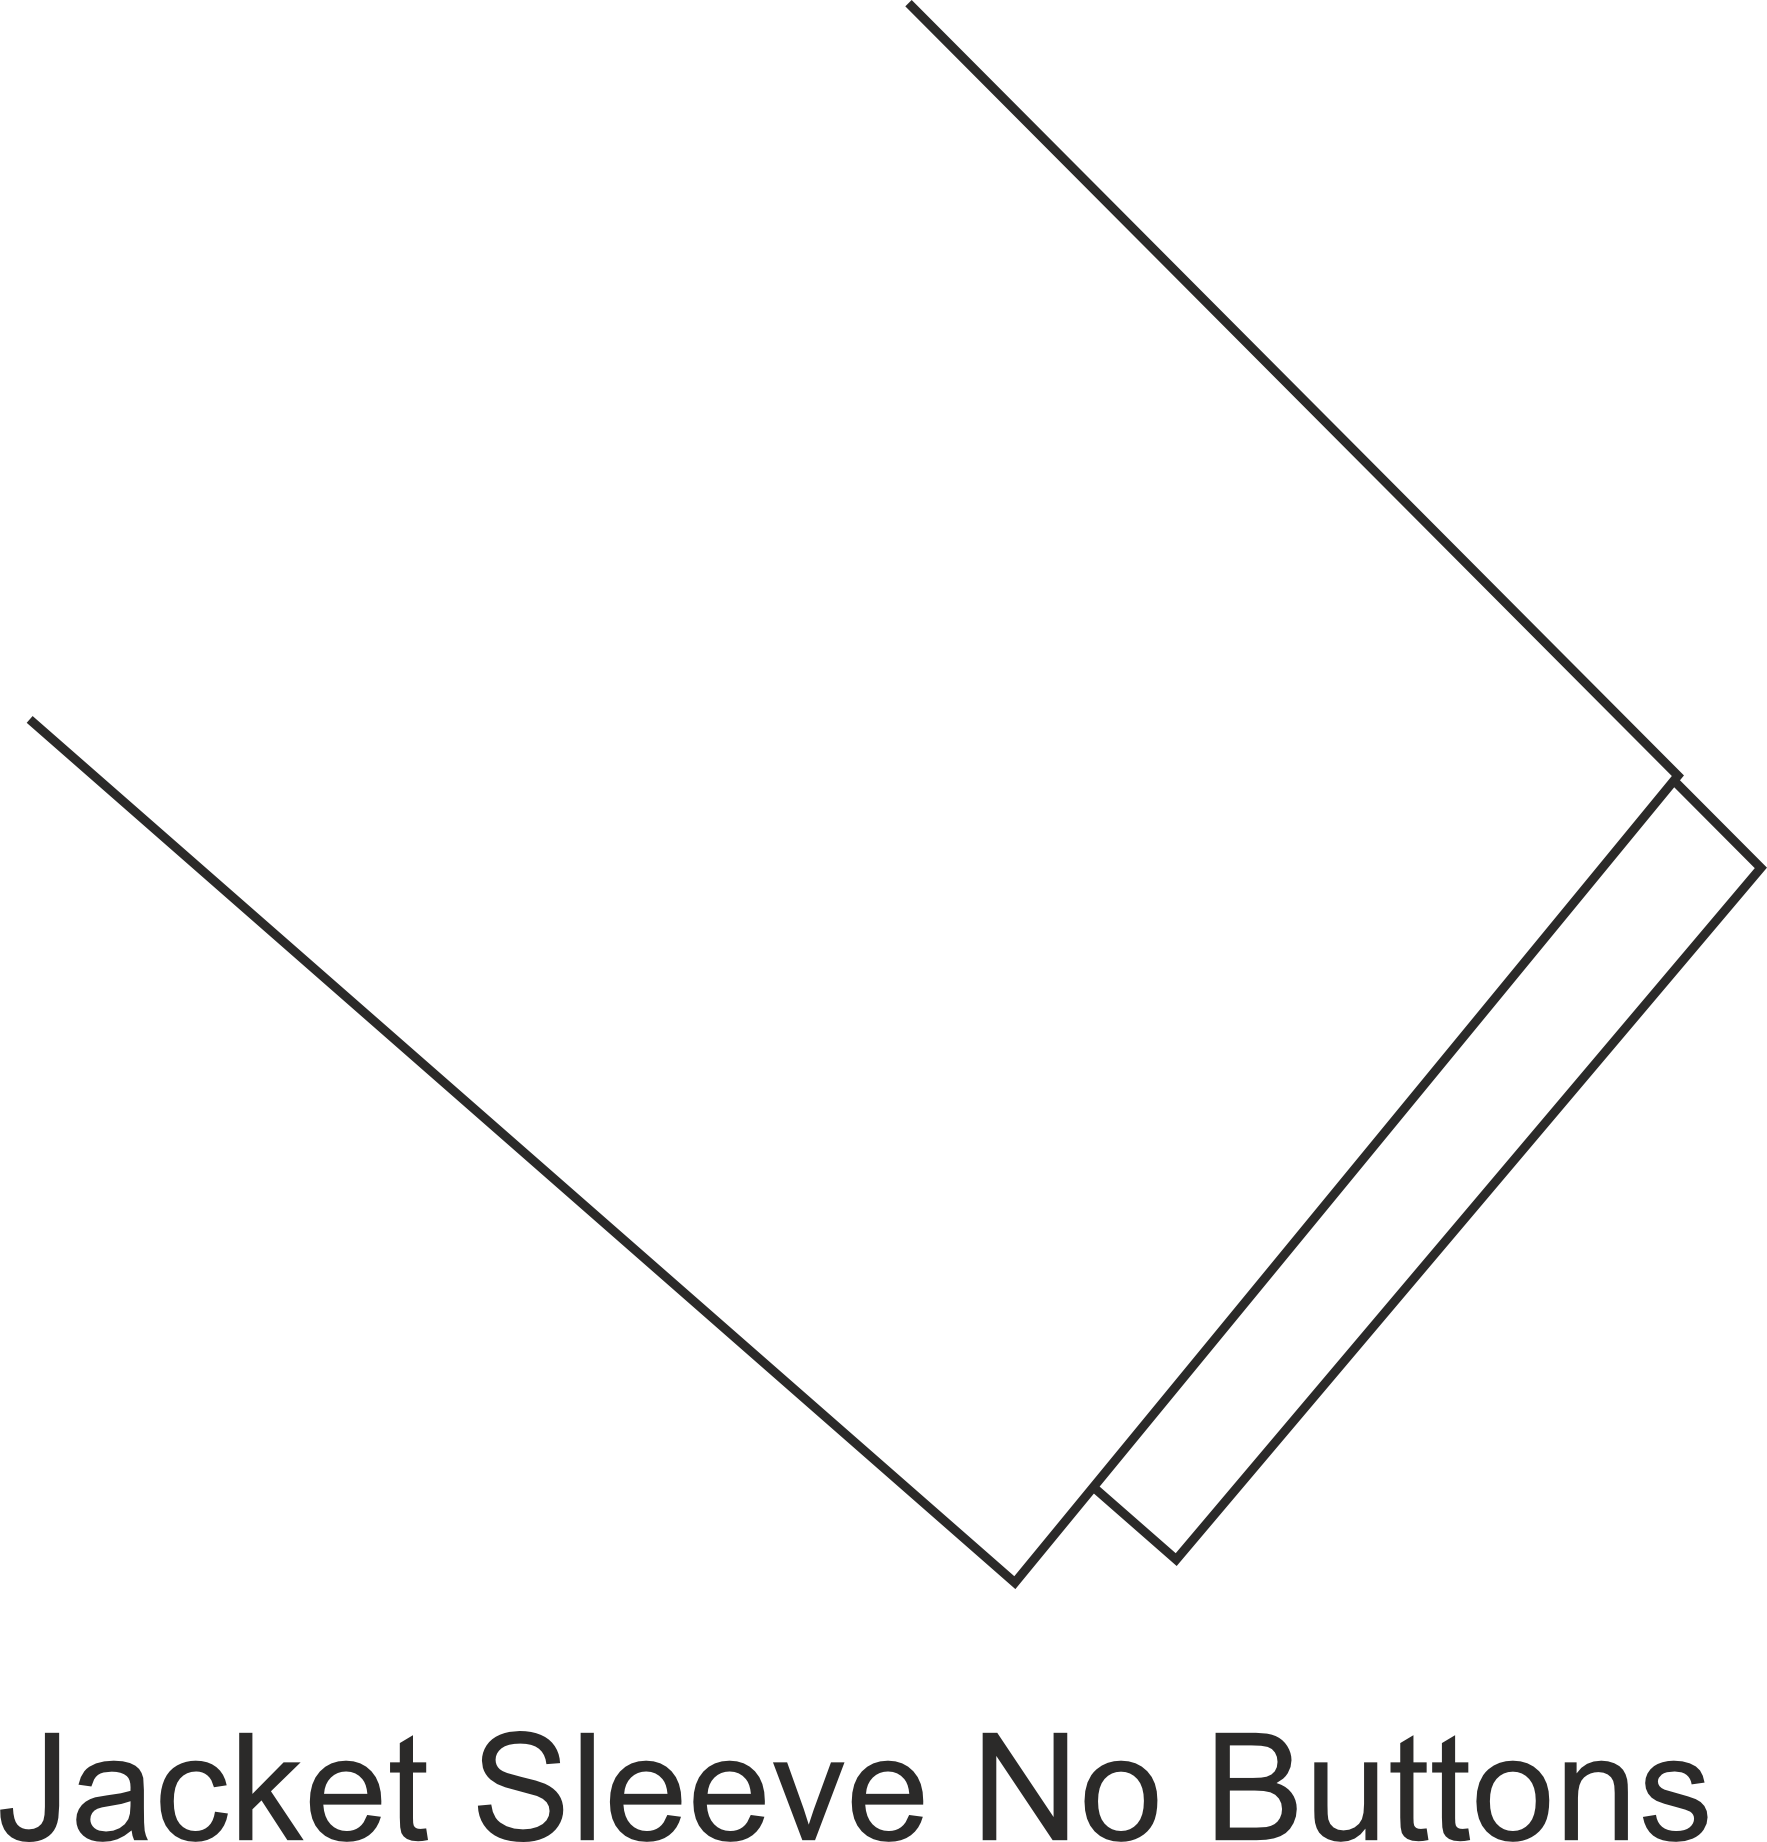 sleeve-no-buttons